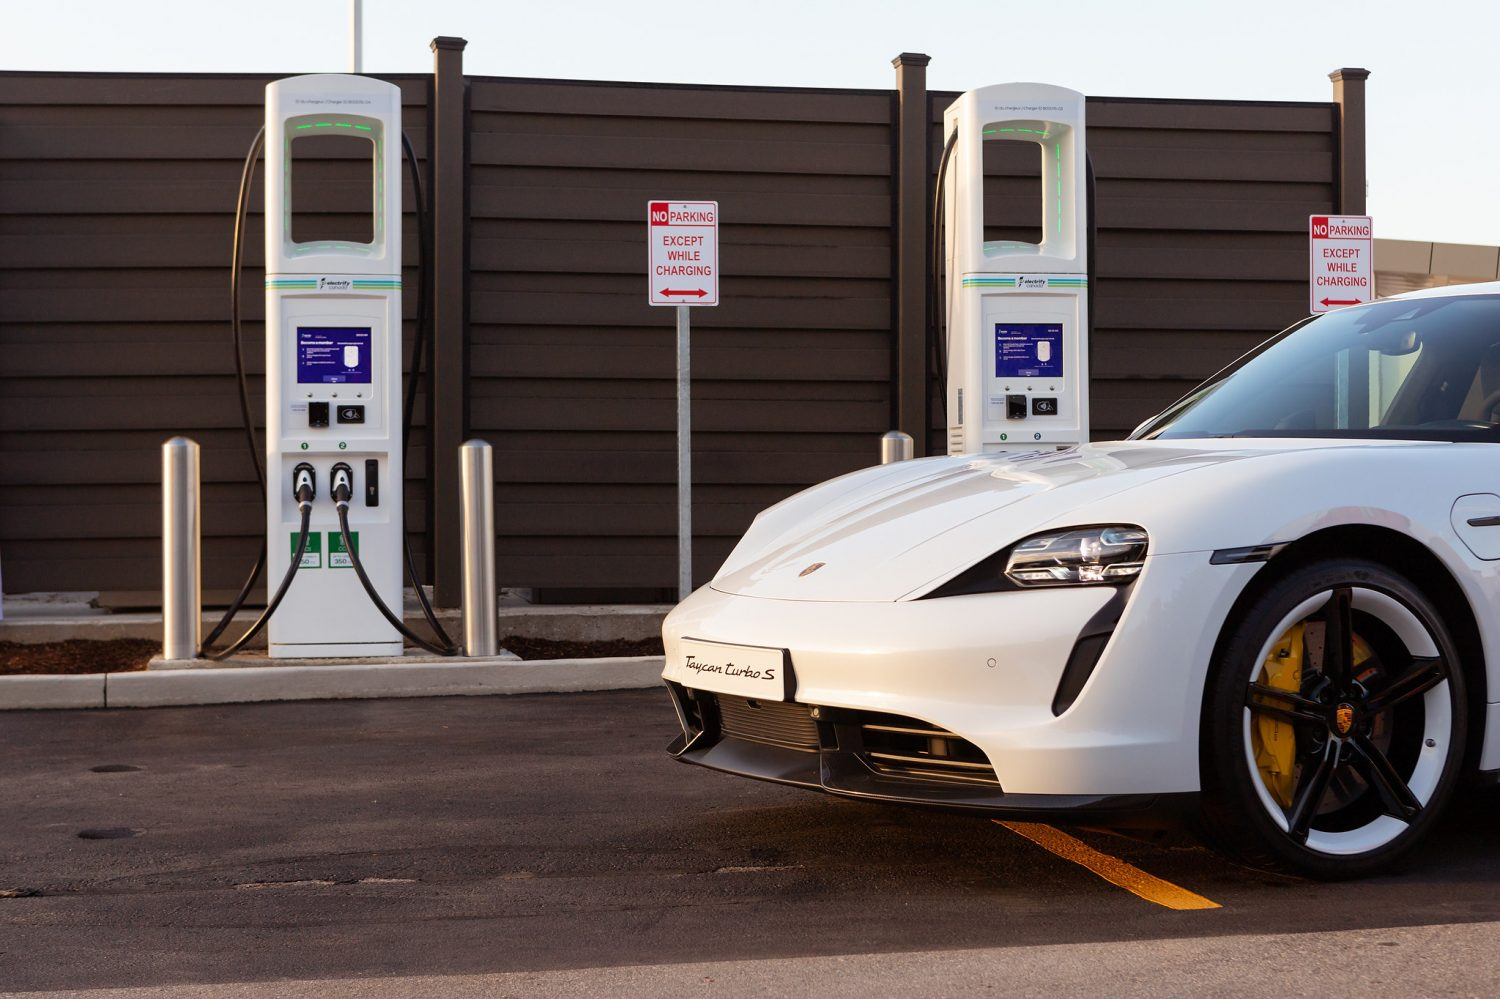 2021 Porsche Taycan first EV to use the innovative payment system on Electrify Canada network